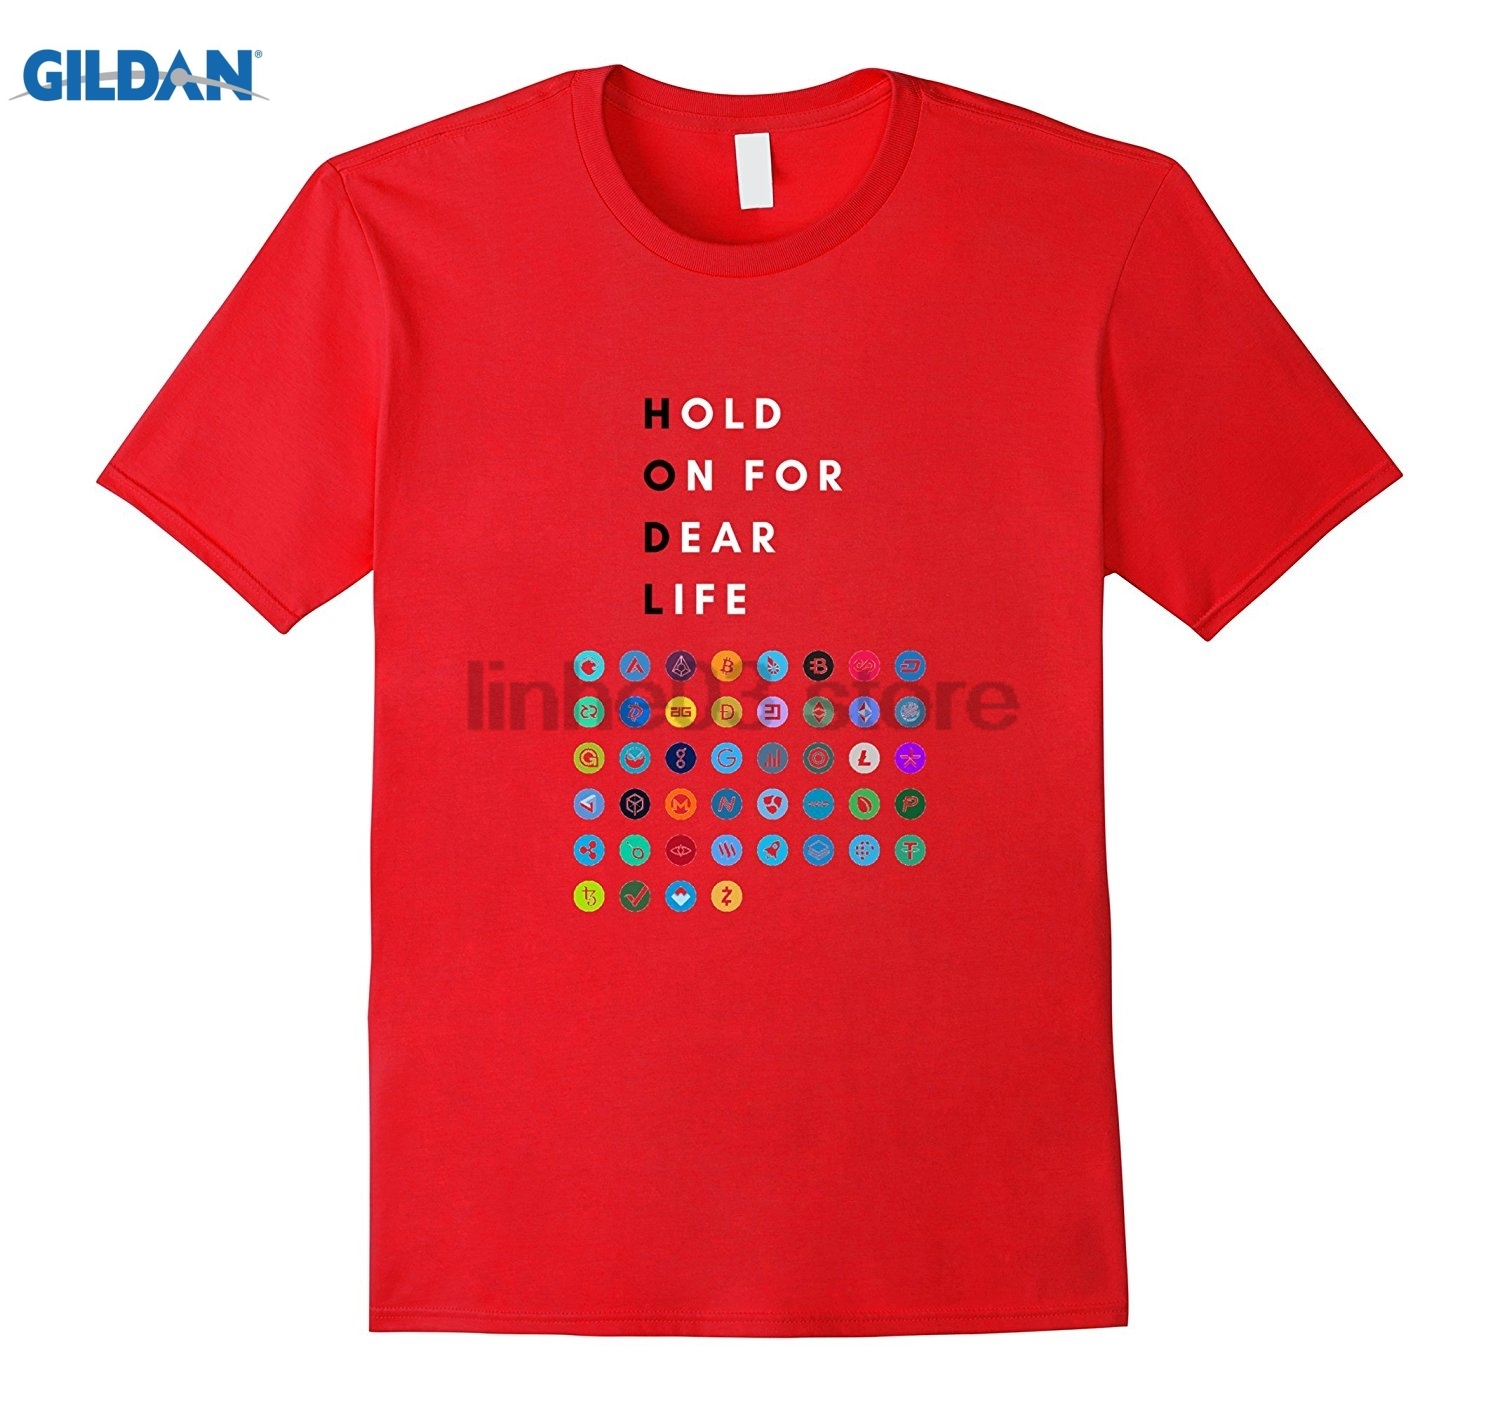 GILDAN Hodl! - Never sell Bitcoin, Ethereum, Litecoin Womens T-shirt ...